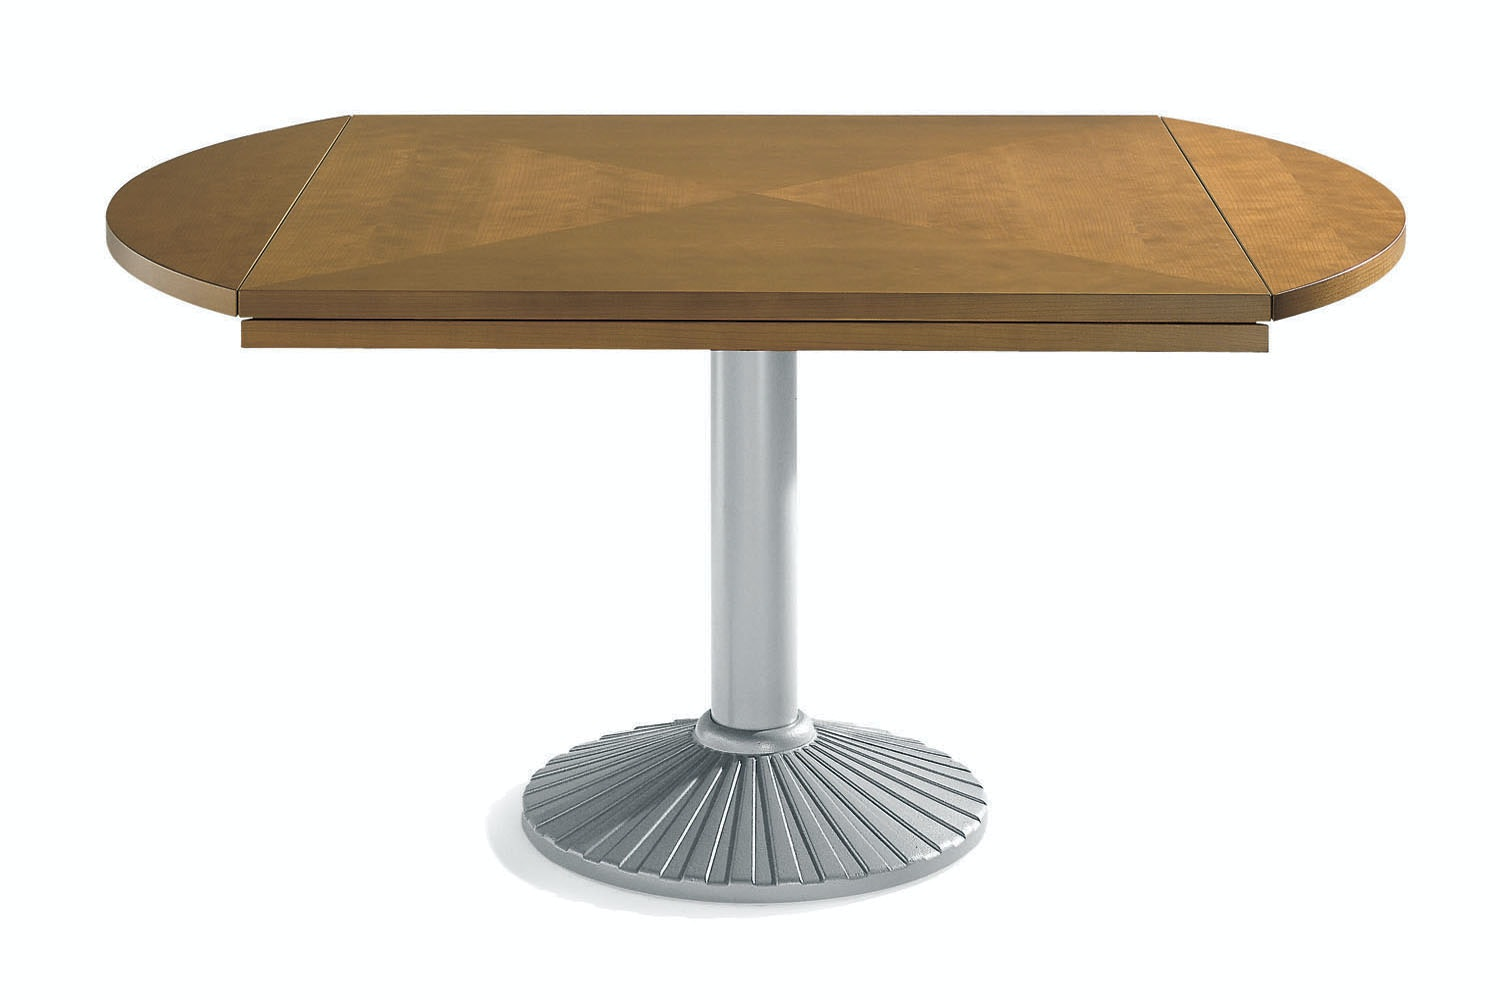 Quadritondo Extension Table by An old piece redesigned for Zanotta